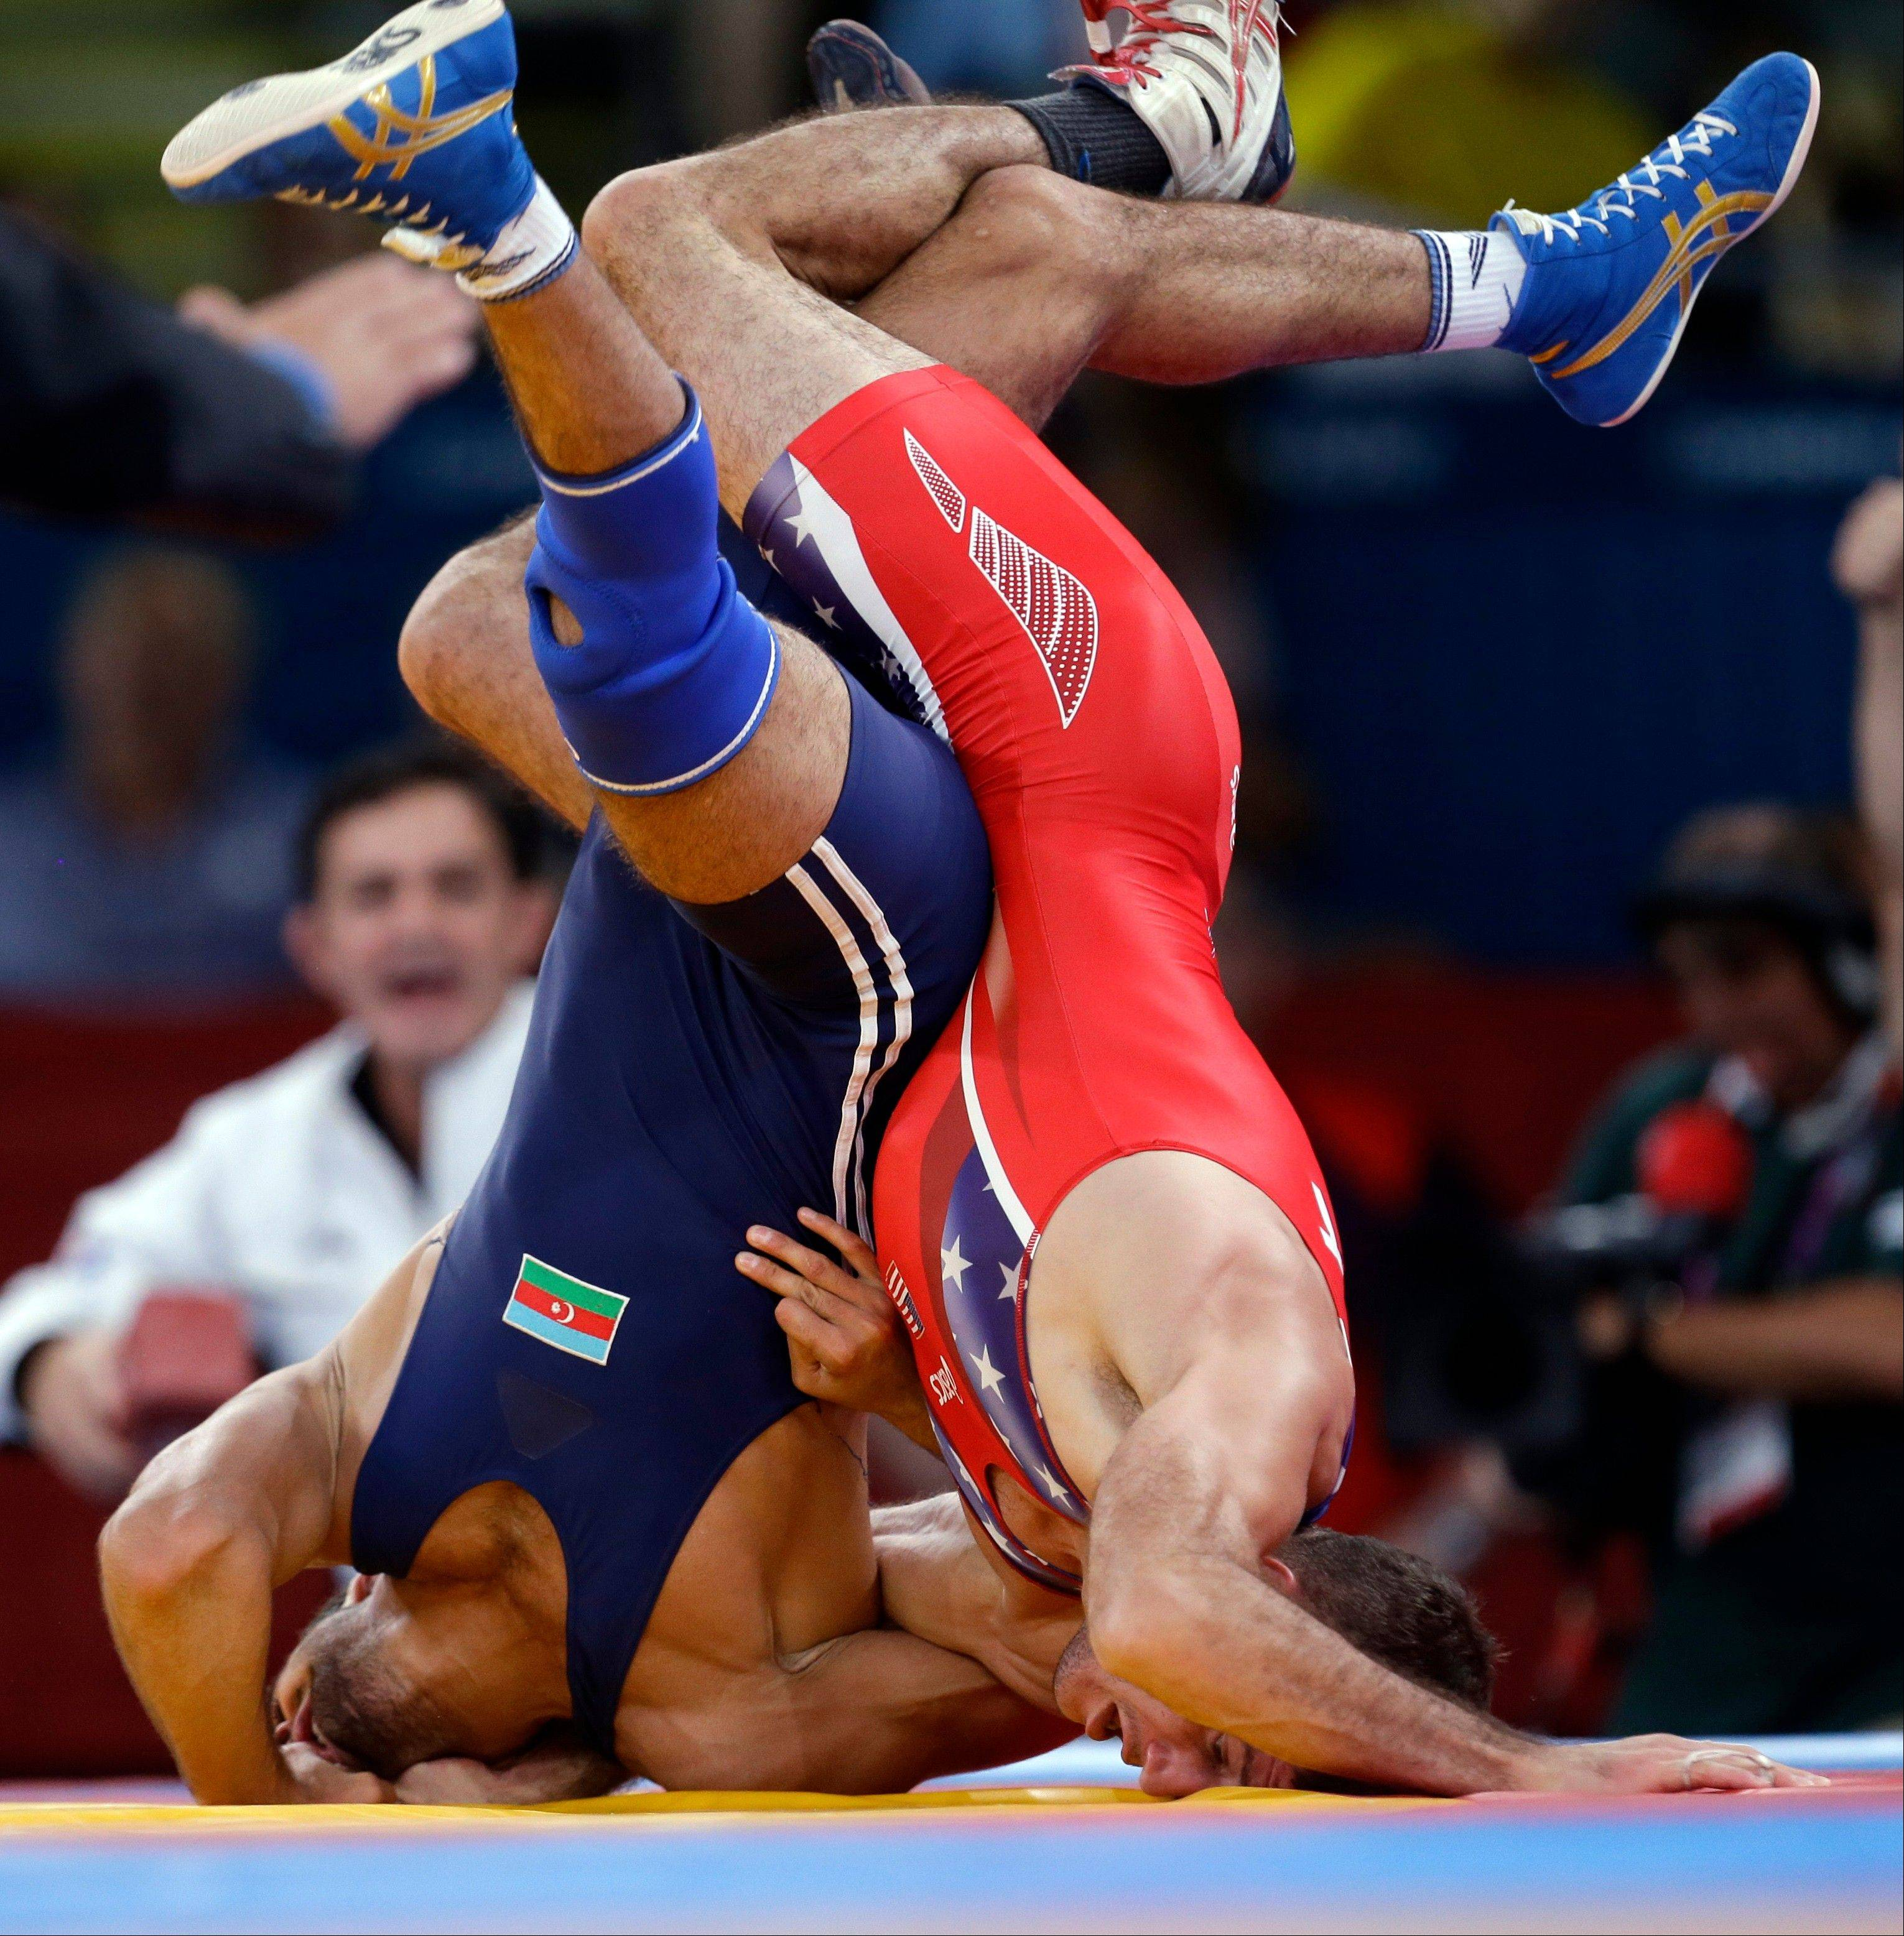 Coleman Scott of the United States competes against Toghrul Asgarov of Azerbaijan (in blue) during the men's 60-kg freestyle wrestling competition at the 2012 Summer Olympics, Saturday, Aug. 11, 2012, in London.